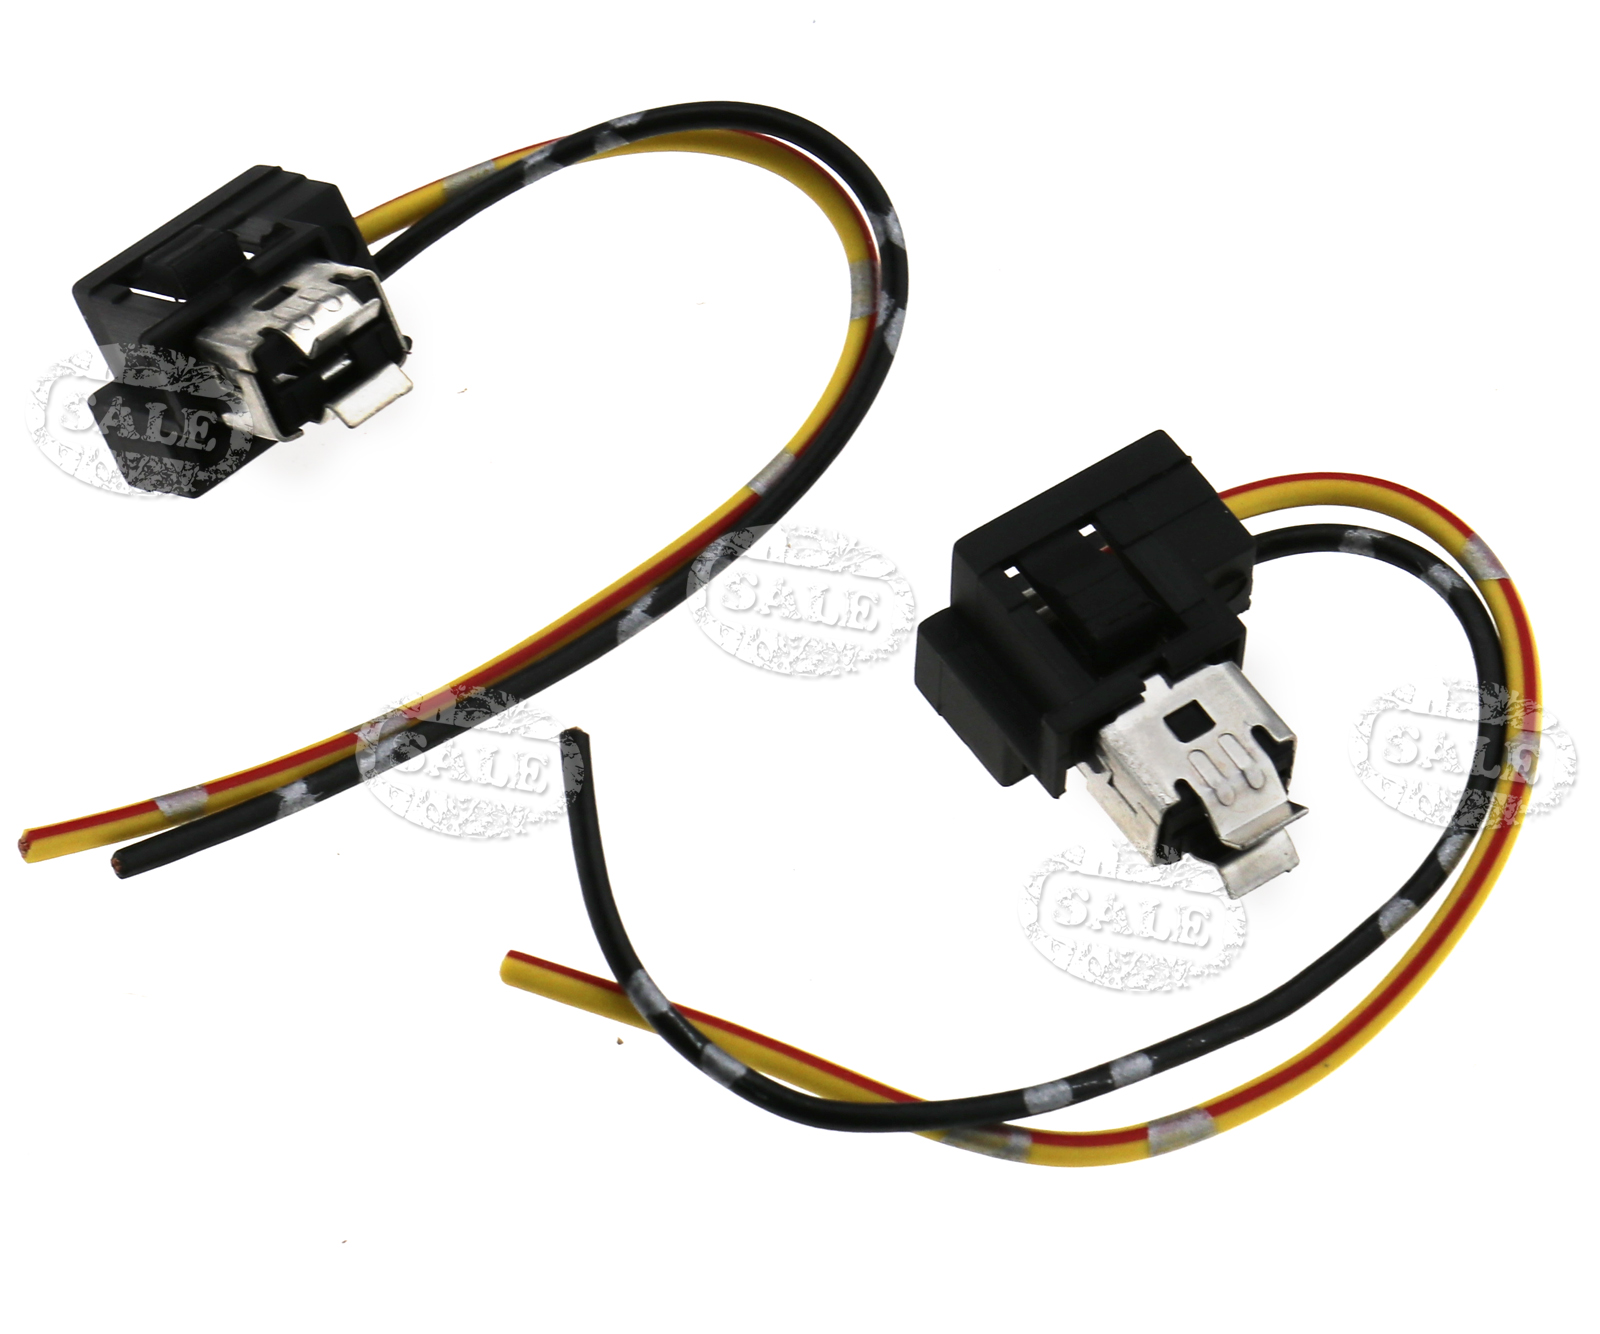 Miraculous 2 X H1 Head Fog Lamp Light Bulb Socket Holder Wiring Connector Plug Wiring 101 Taclepimsautoservicenl